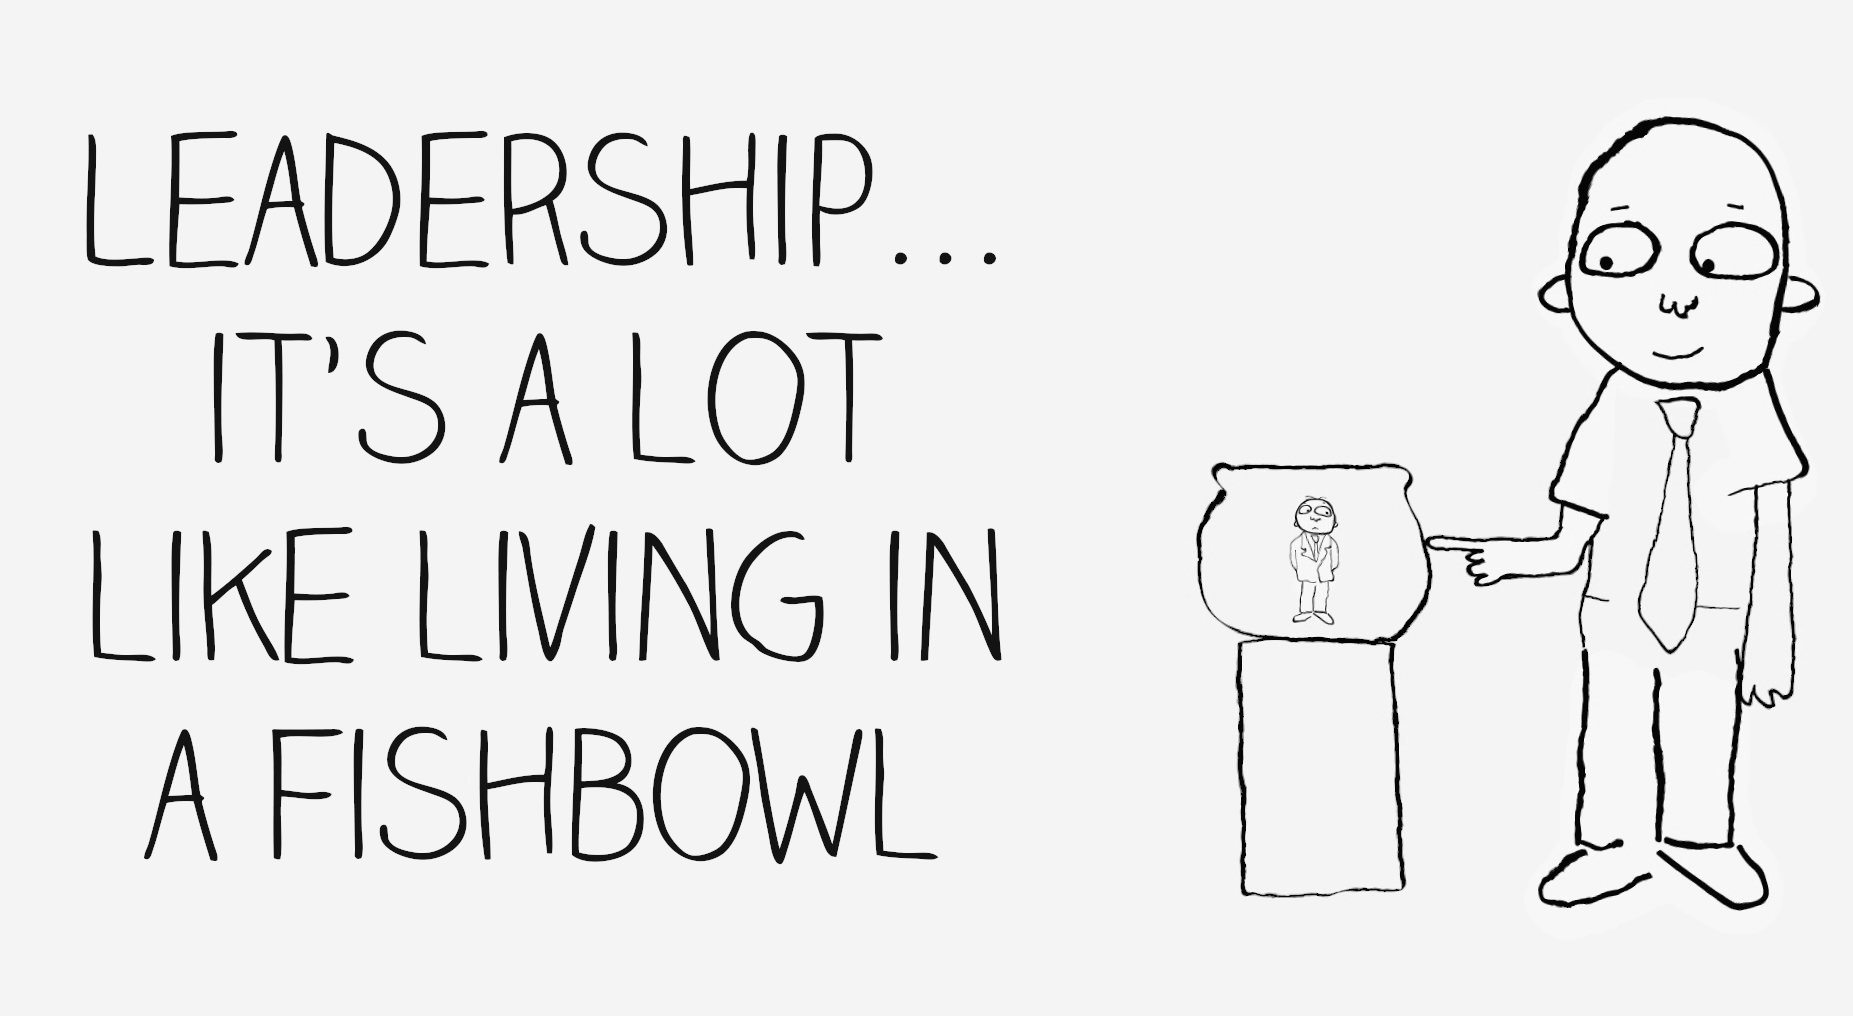 Leadership in a fishbowl